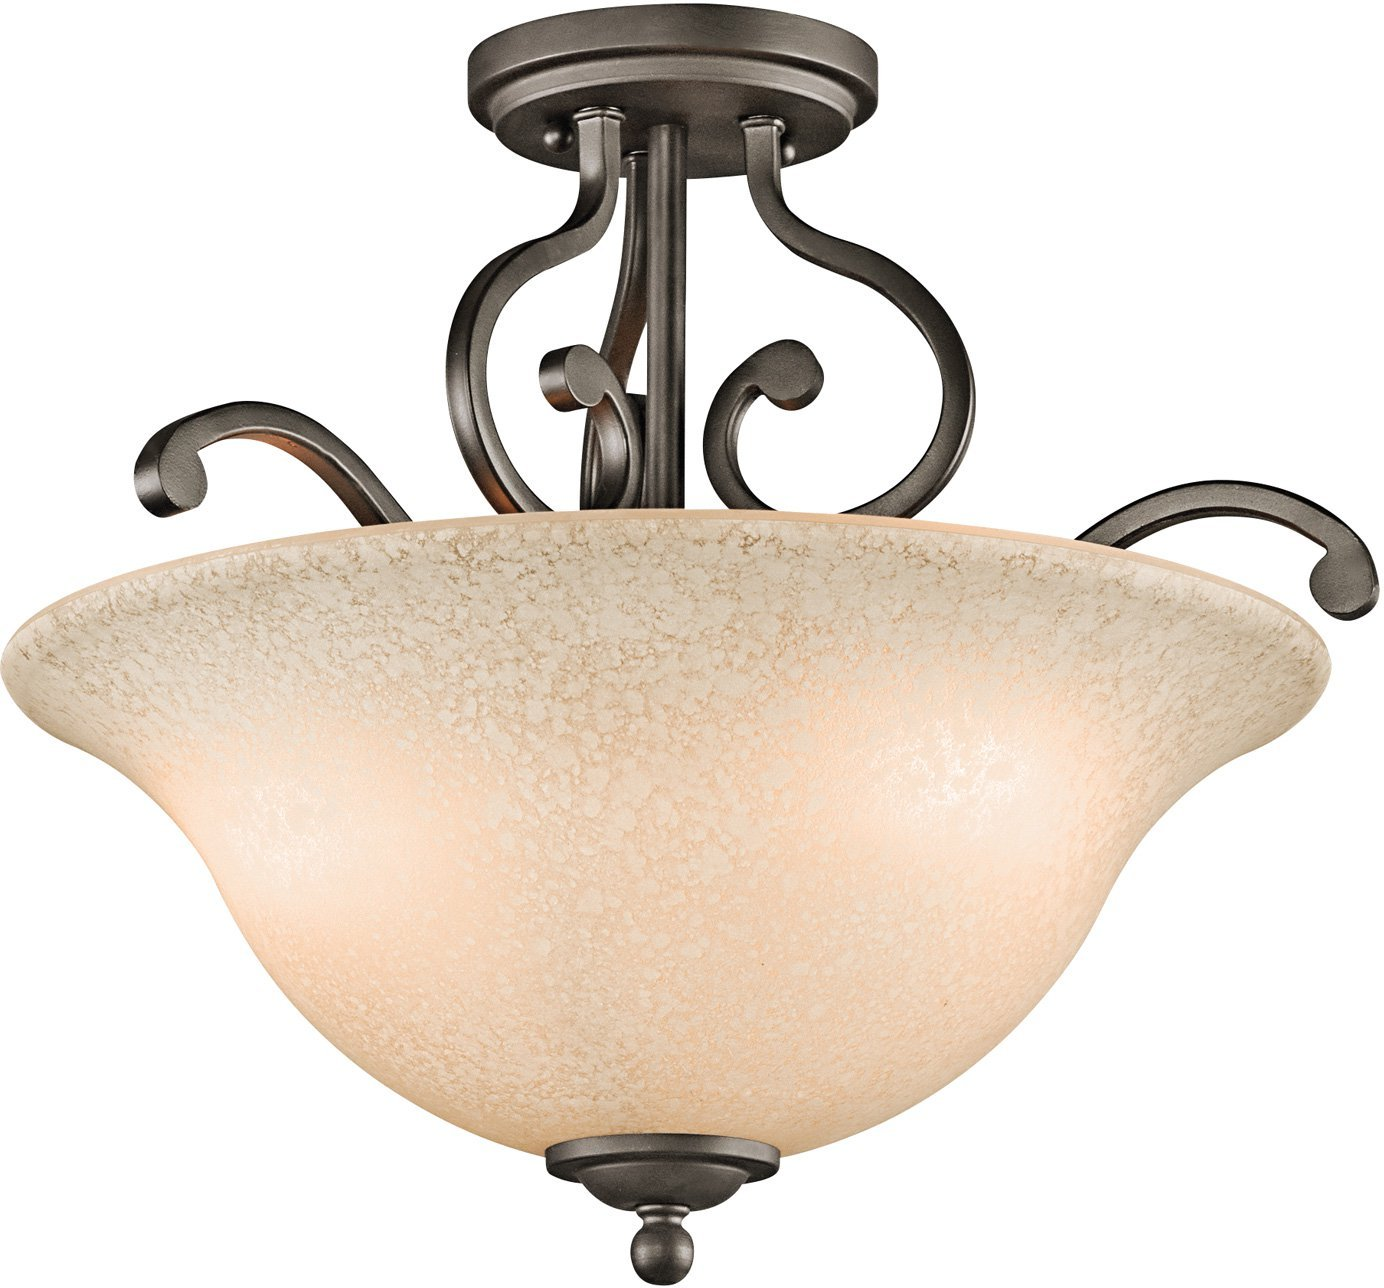 Kichler 43232OZ Camerena Semi-Flush 3-Light, Olde Bronze